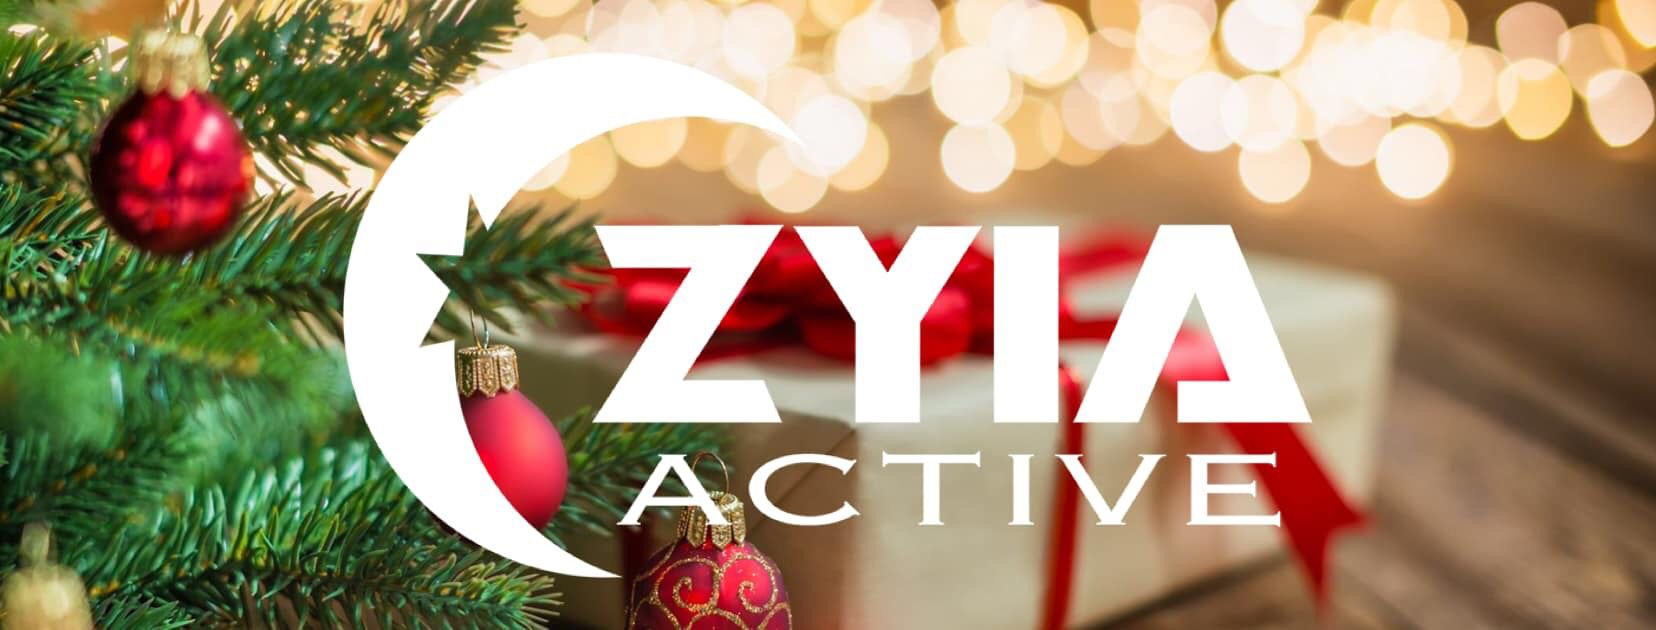 Zyia cover photo Christmas cover photo, Christmas cover